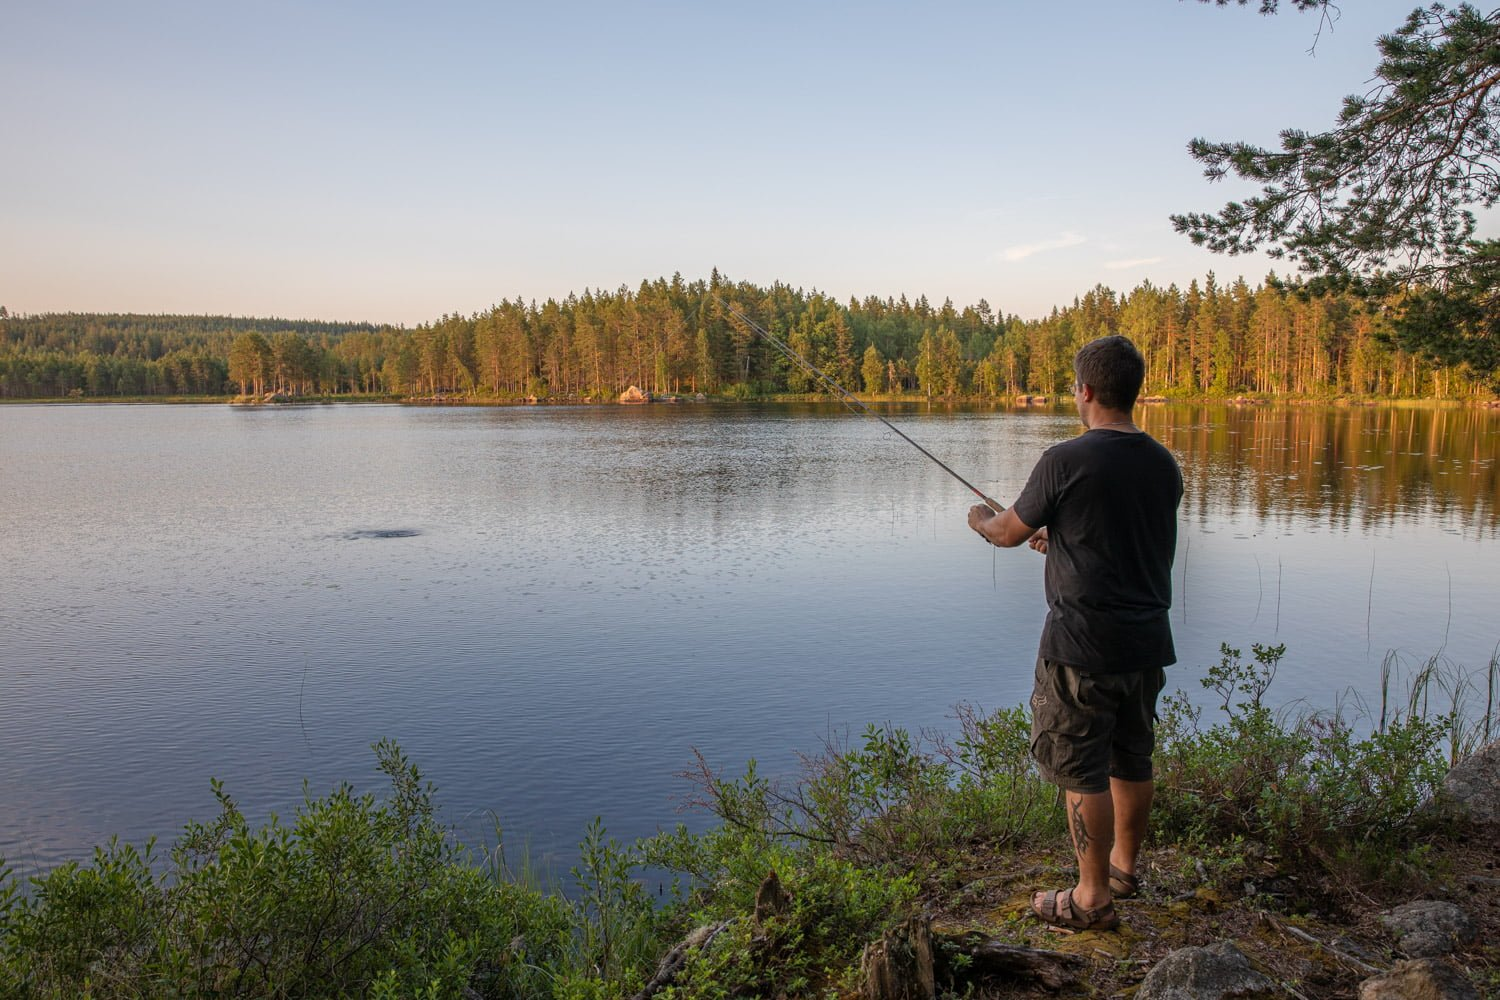 Hiking or fishing in the area